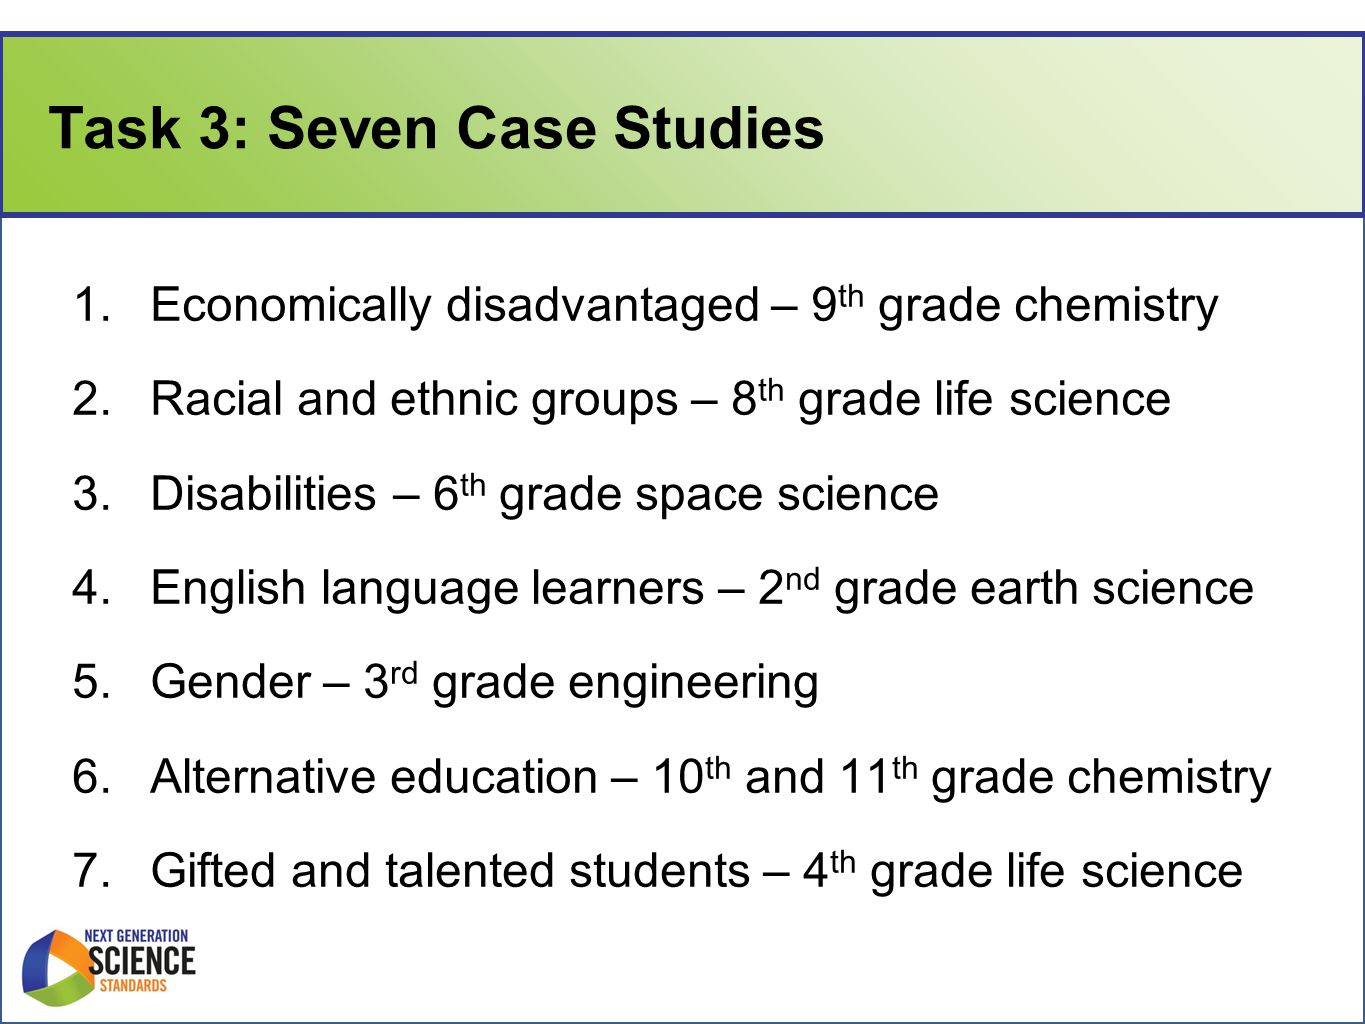 Task 3: Seven Case Studies 1.Economically disadvantaged – 9 th grade chemistry 2.Racial and ethnic groups – 8 th grade life science 3.Disabilities – 6 th grade space science 4.English language learners – 2 nd grade earth science 5.Gender – 3 rd grade engineering 6.Alternative education – 10 th and 11 th grade chemistry 7.Gifted and talented students – 4 th grade life science